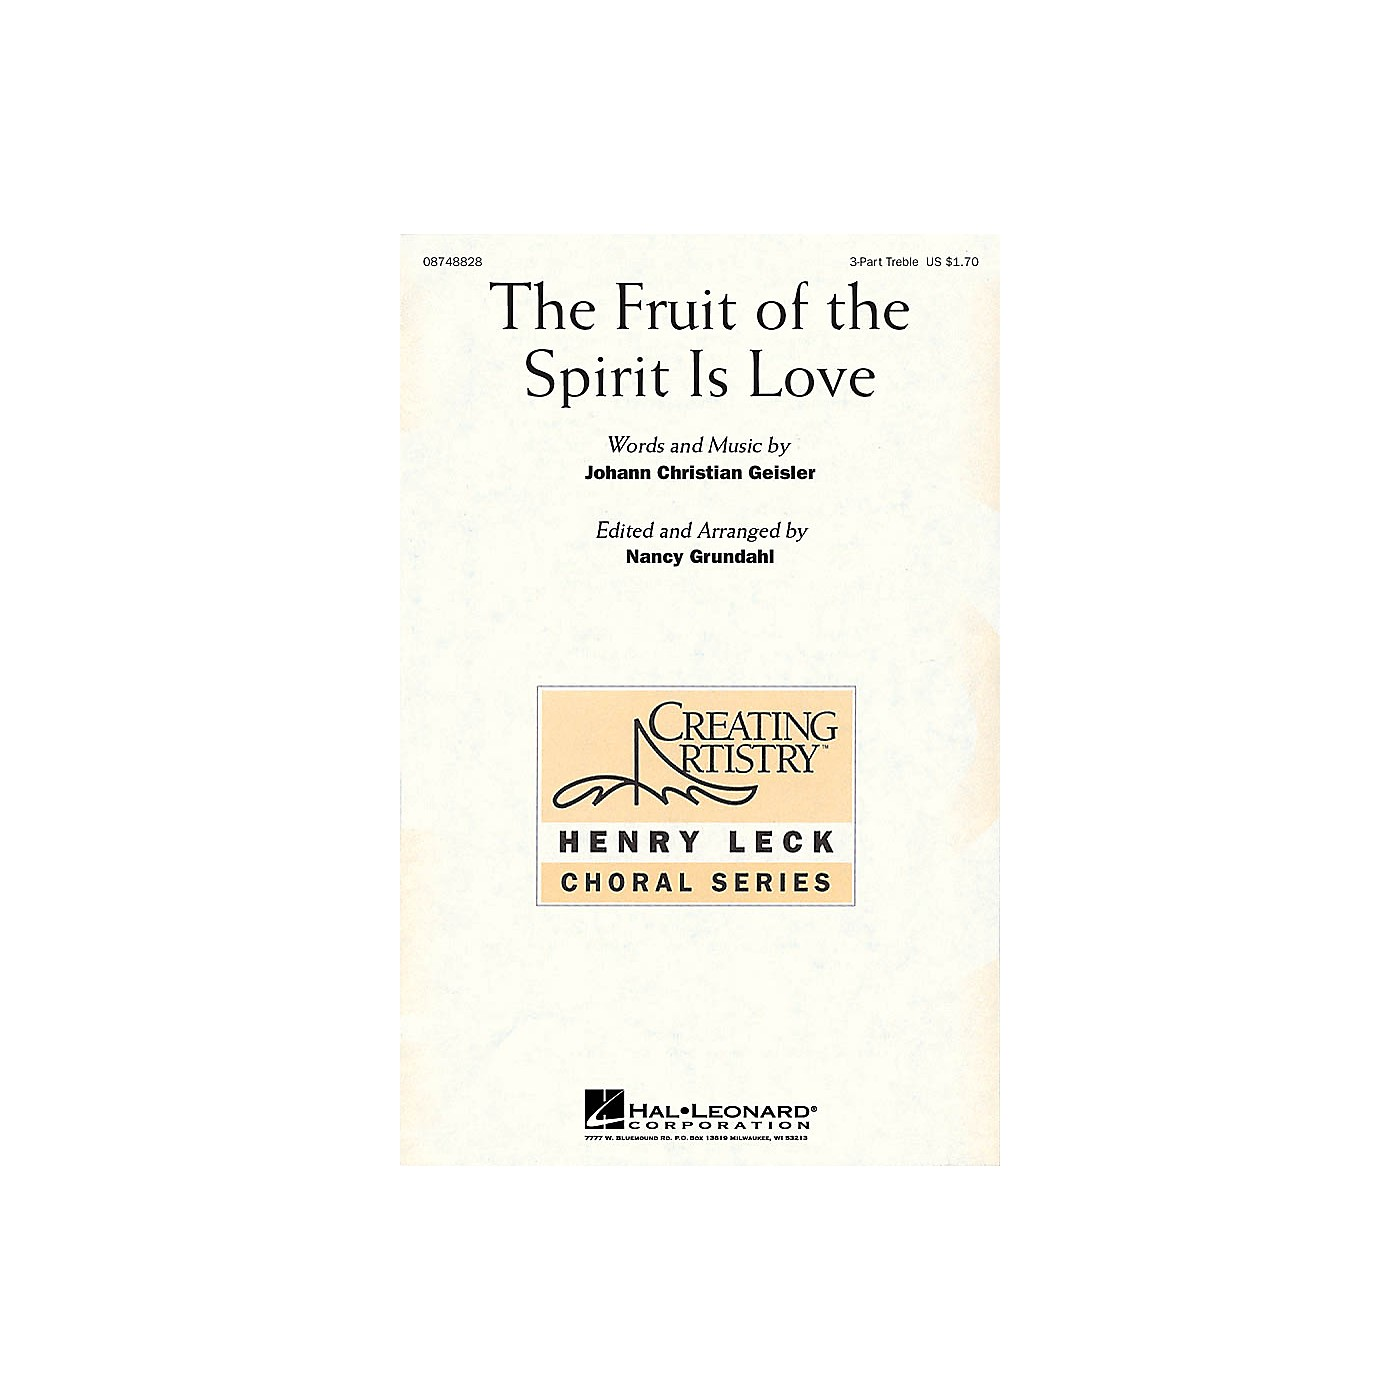 Hal Leonard The Fruit of the Spirit Is Love 3 Part Treble arranged by Nancy Grundahl thumbnail